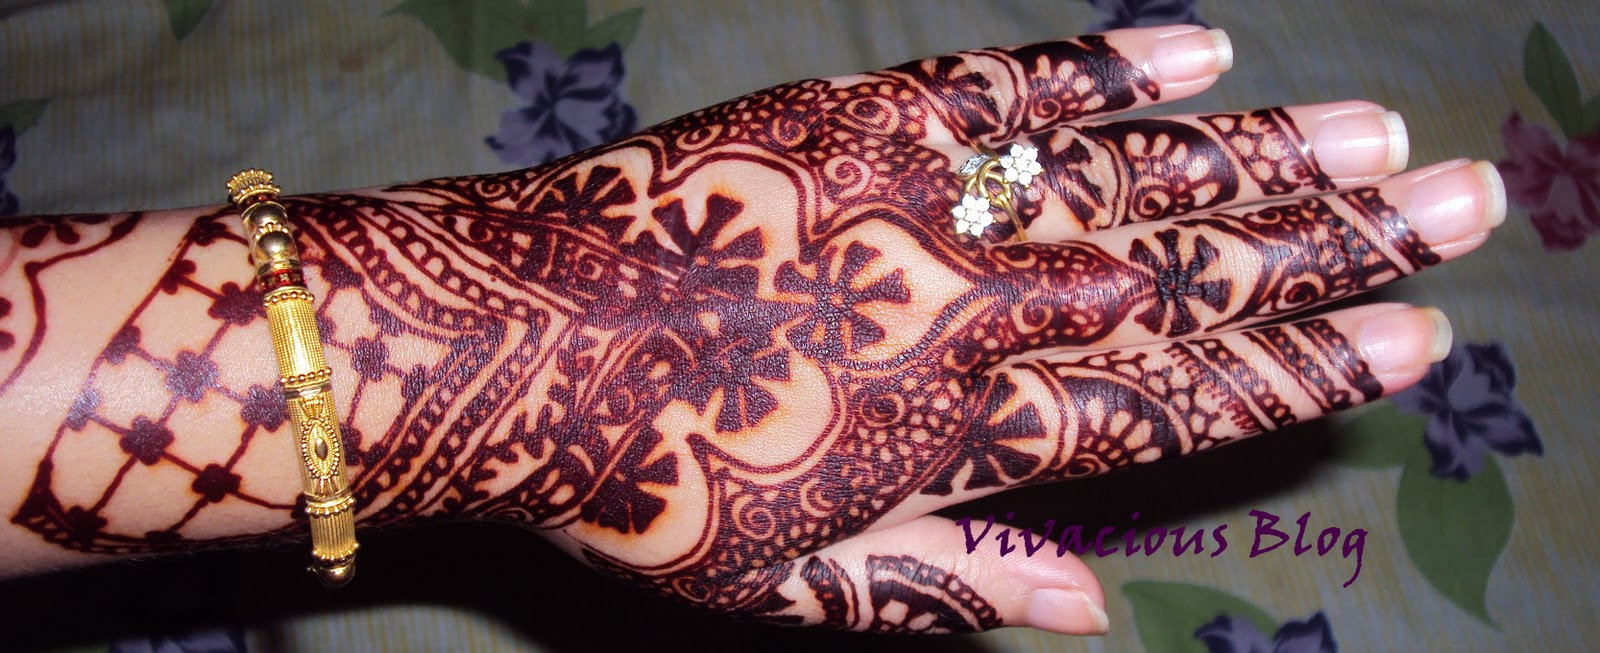 Red Mehndi Tattoo : Vivacious experiment with red mehndi